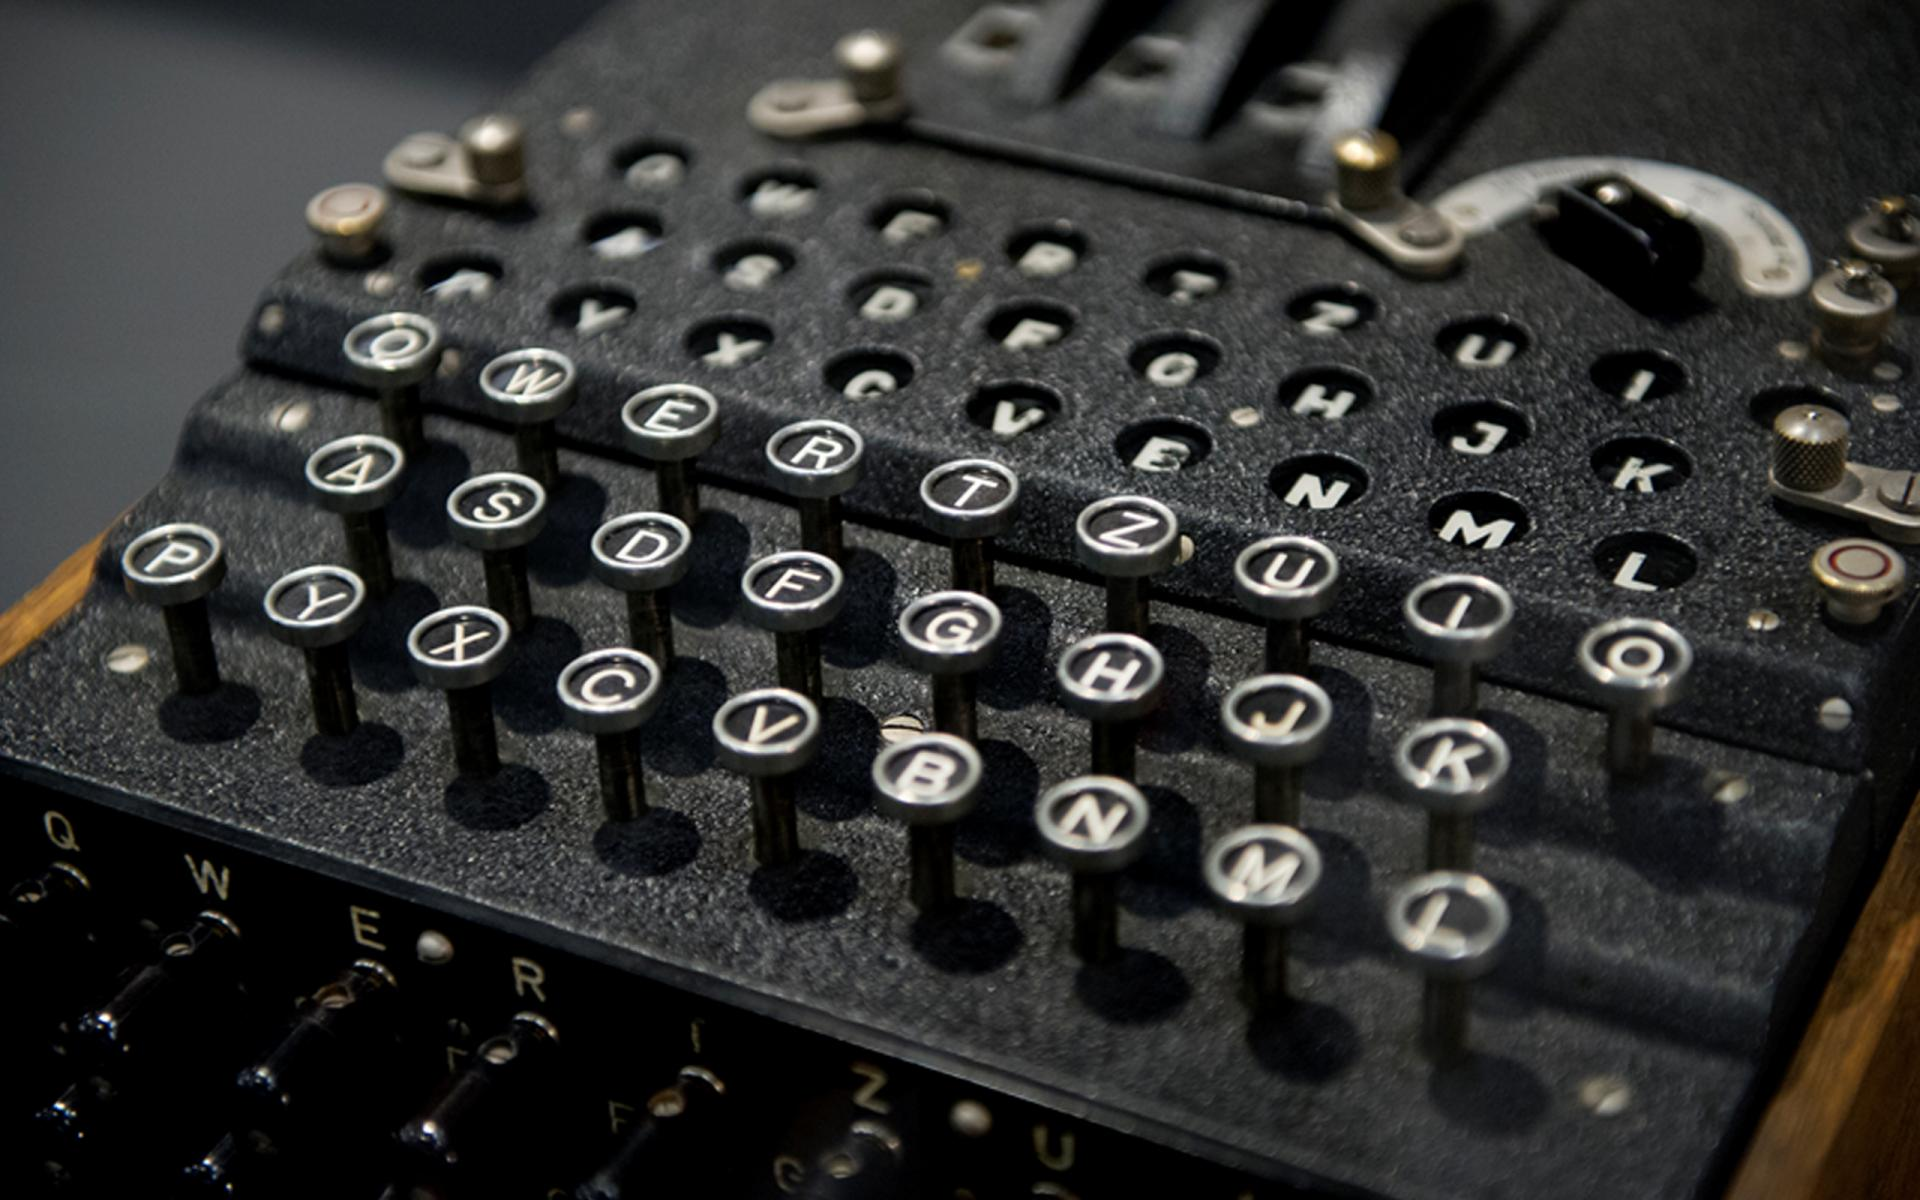 Enigma machine on display in the Turning Points gallery